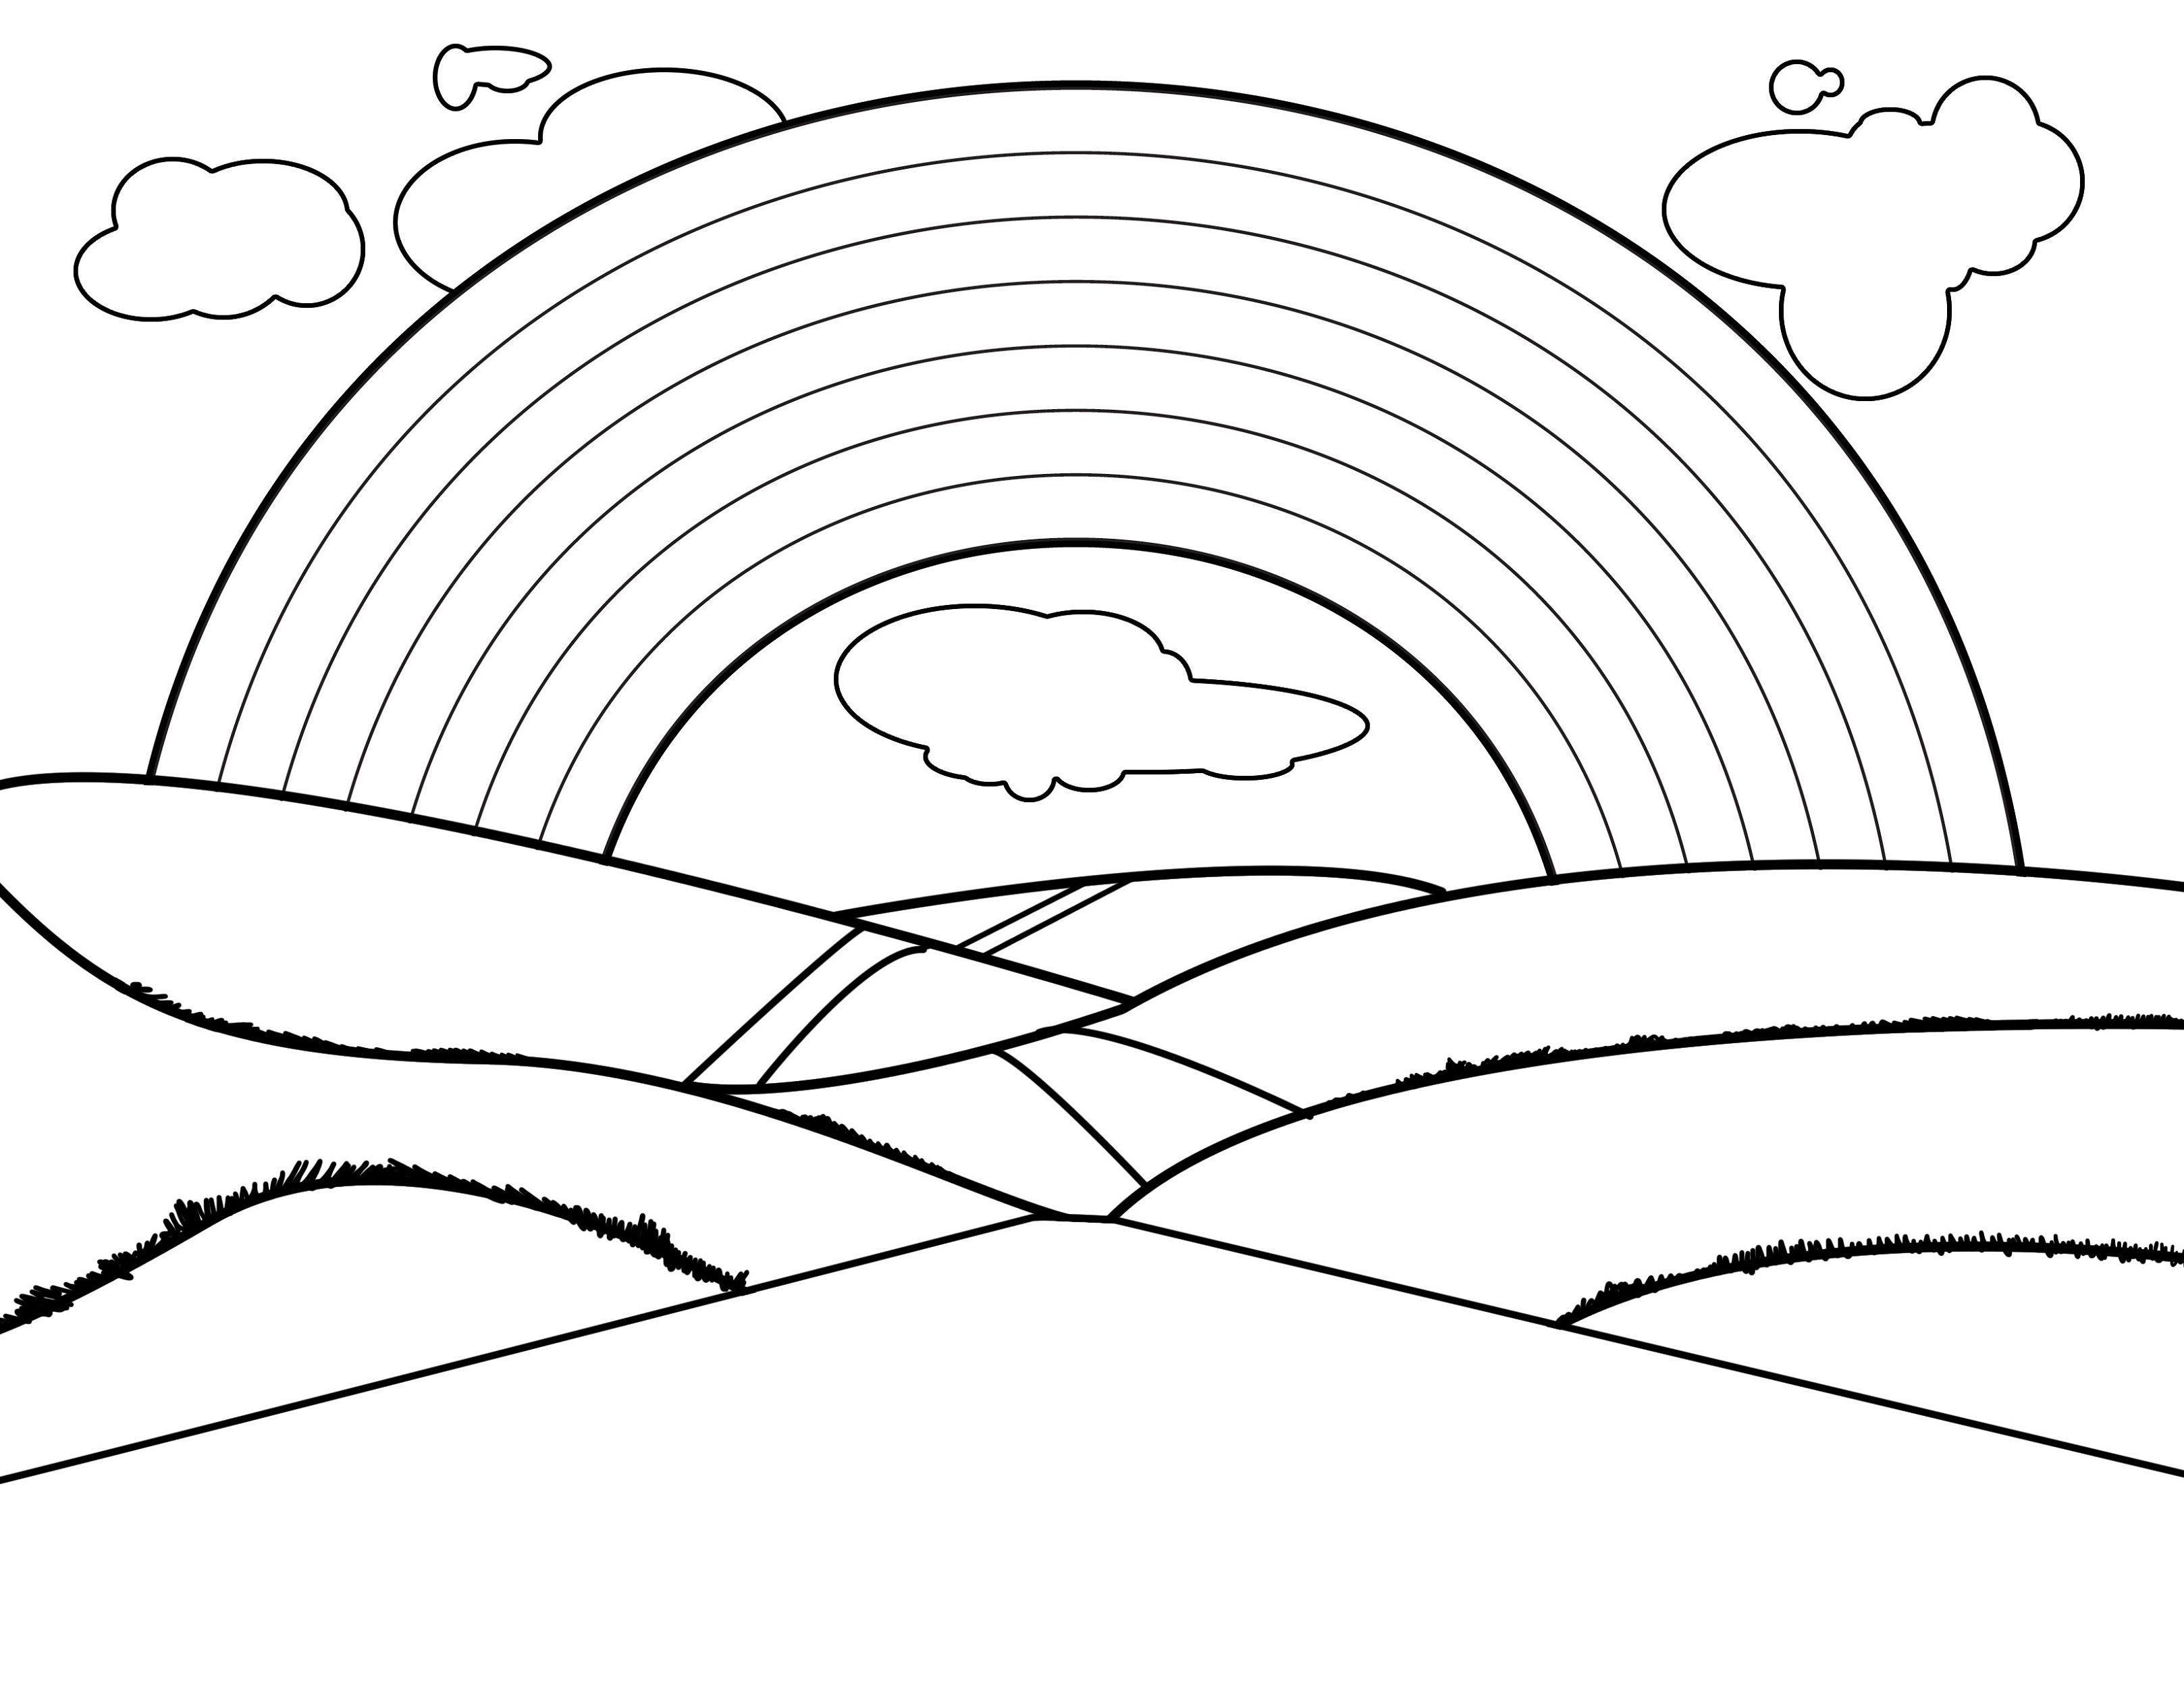 rainbow coloring pages rainbow coloring page darcy miller designs rainbow pages coloring